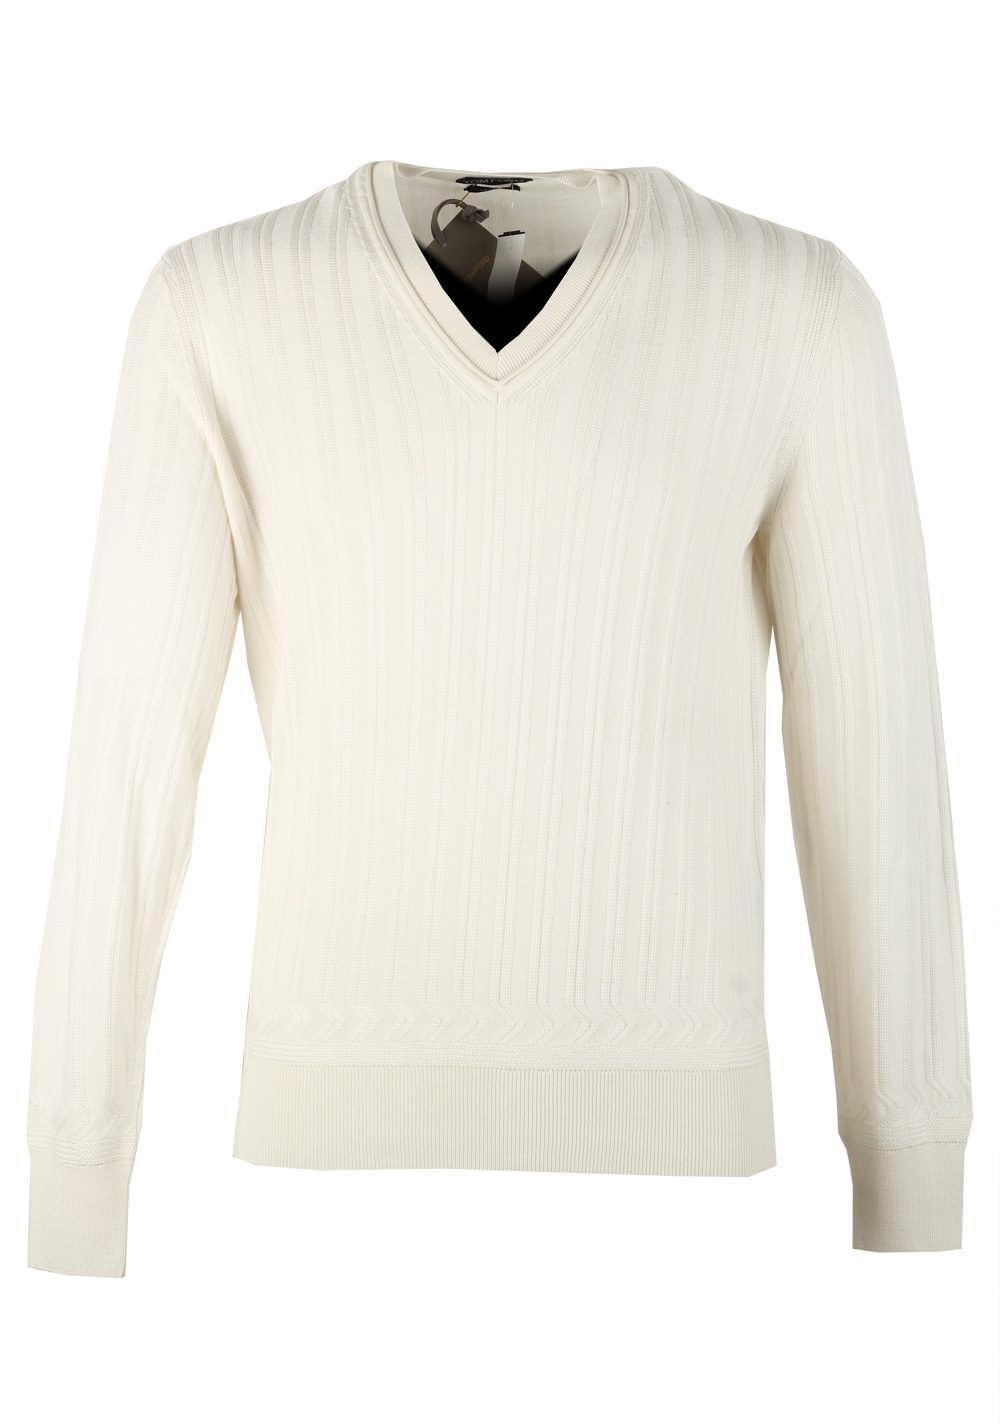 TOM FORD White V Neck Sweater Size 48 / 38R U.S. In Cashmere Silk | Costume Limité